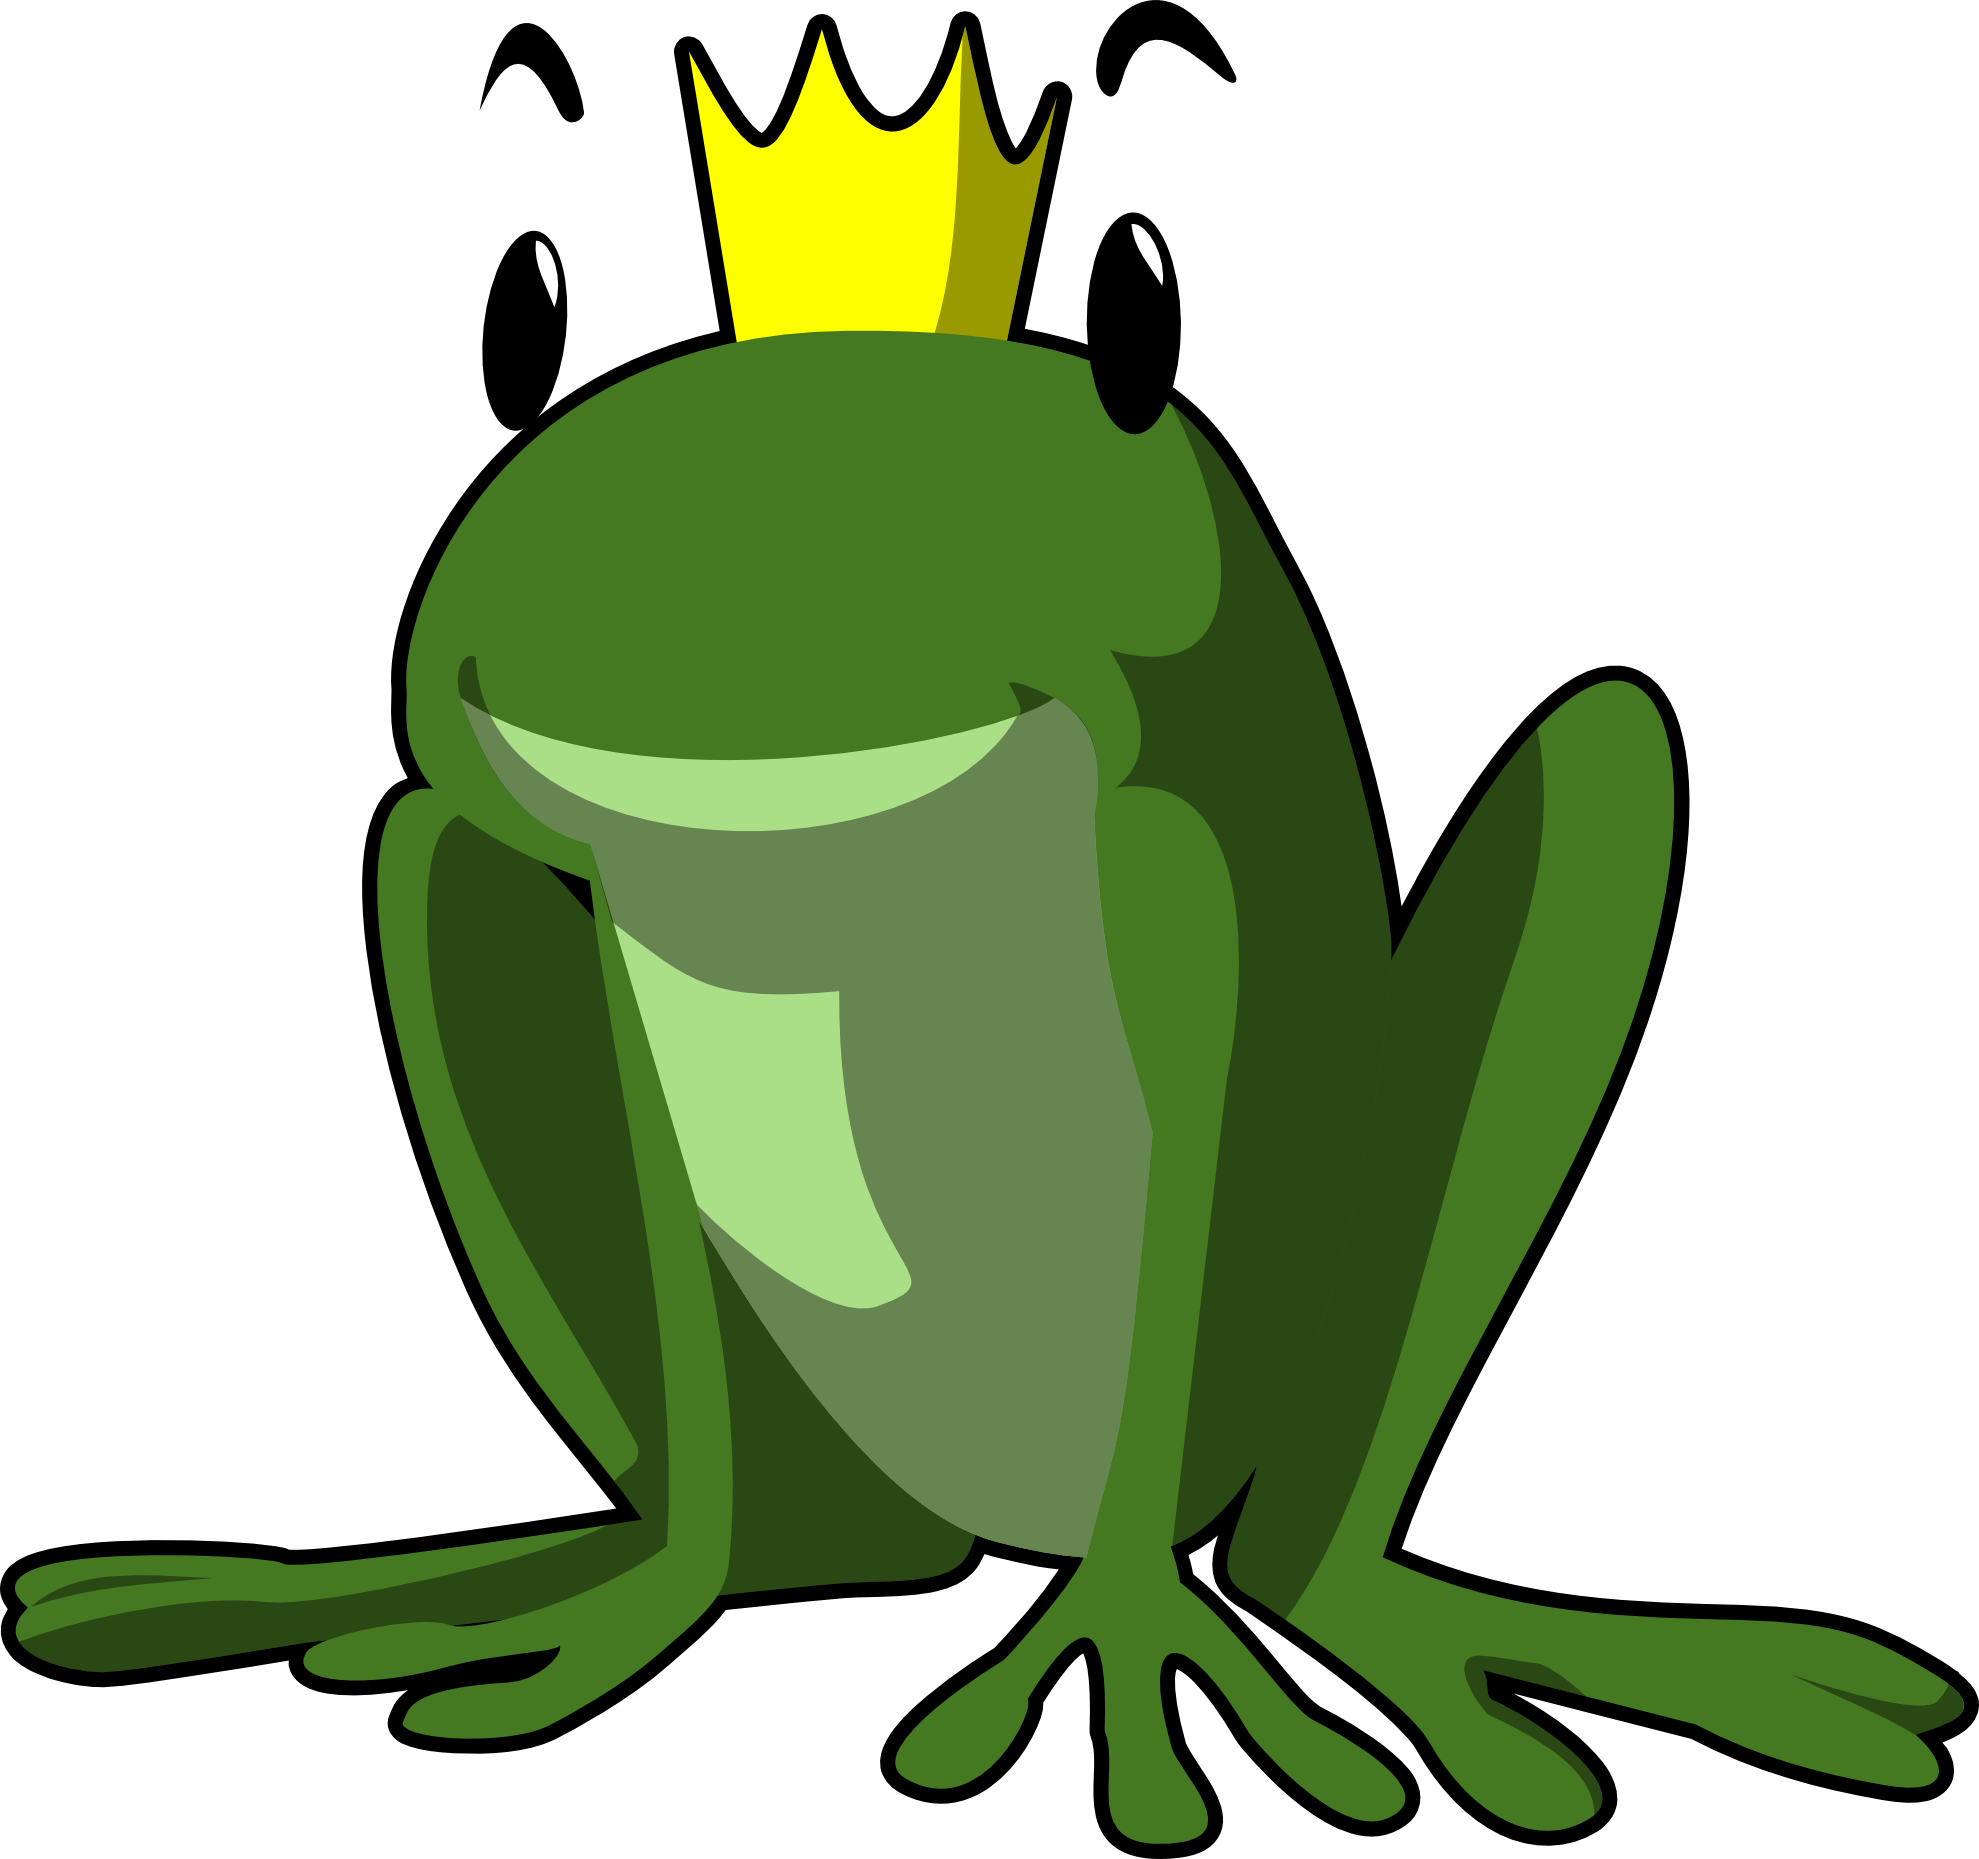 Frogs clipart body. Cute frog prince panda